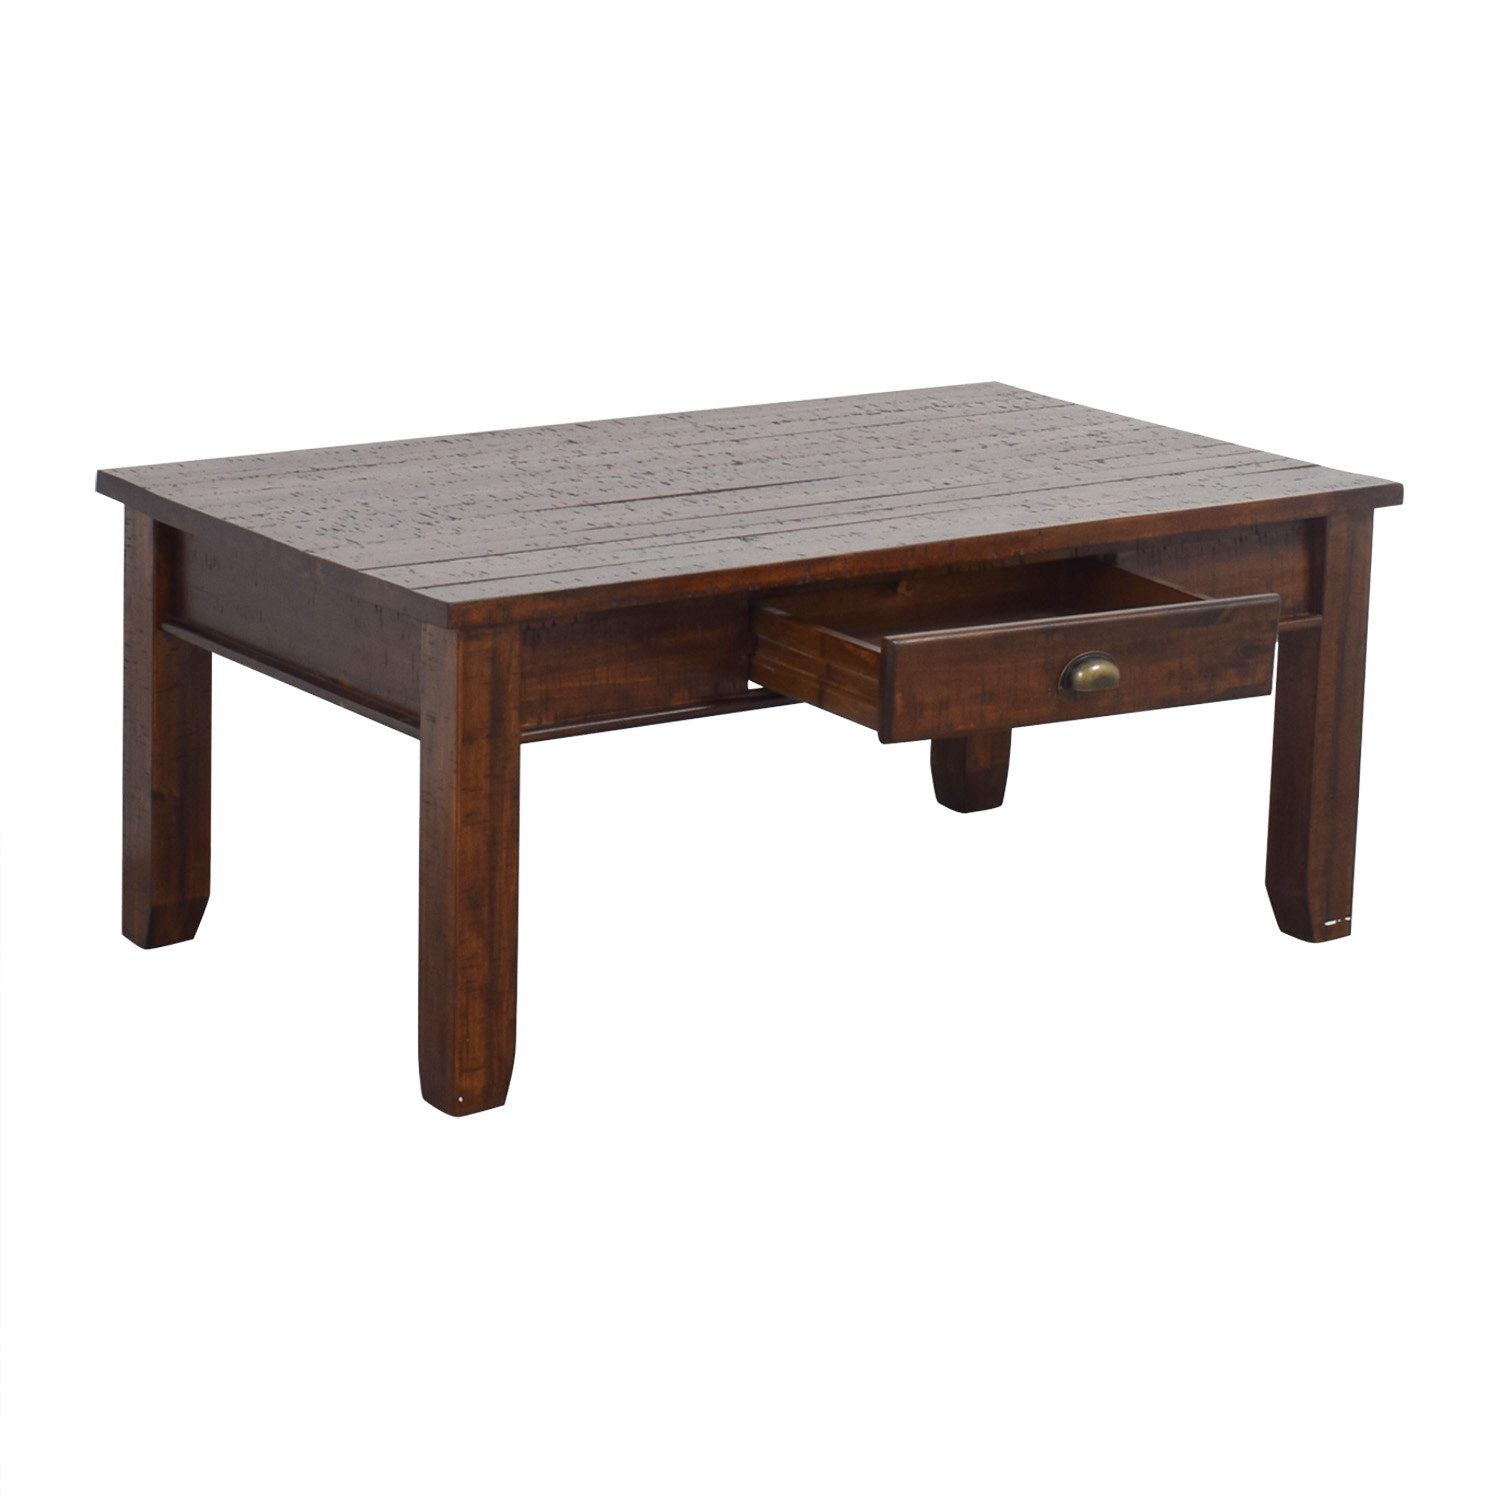 buy Raymour & Flanigan Urban Lodge Coffee Table Raymour & Flanigan